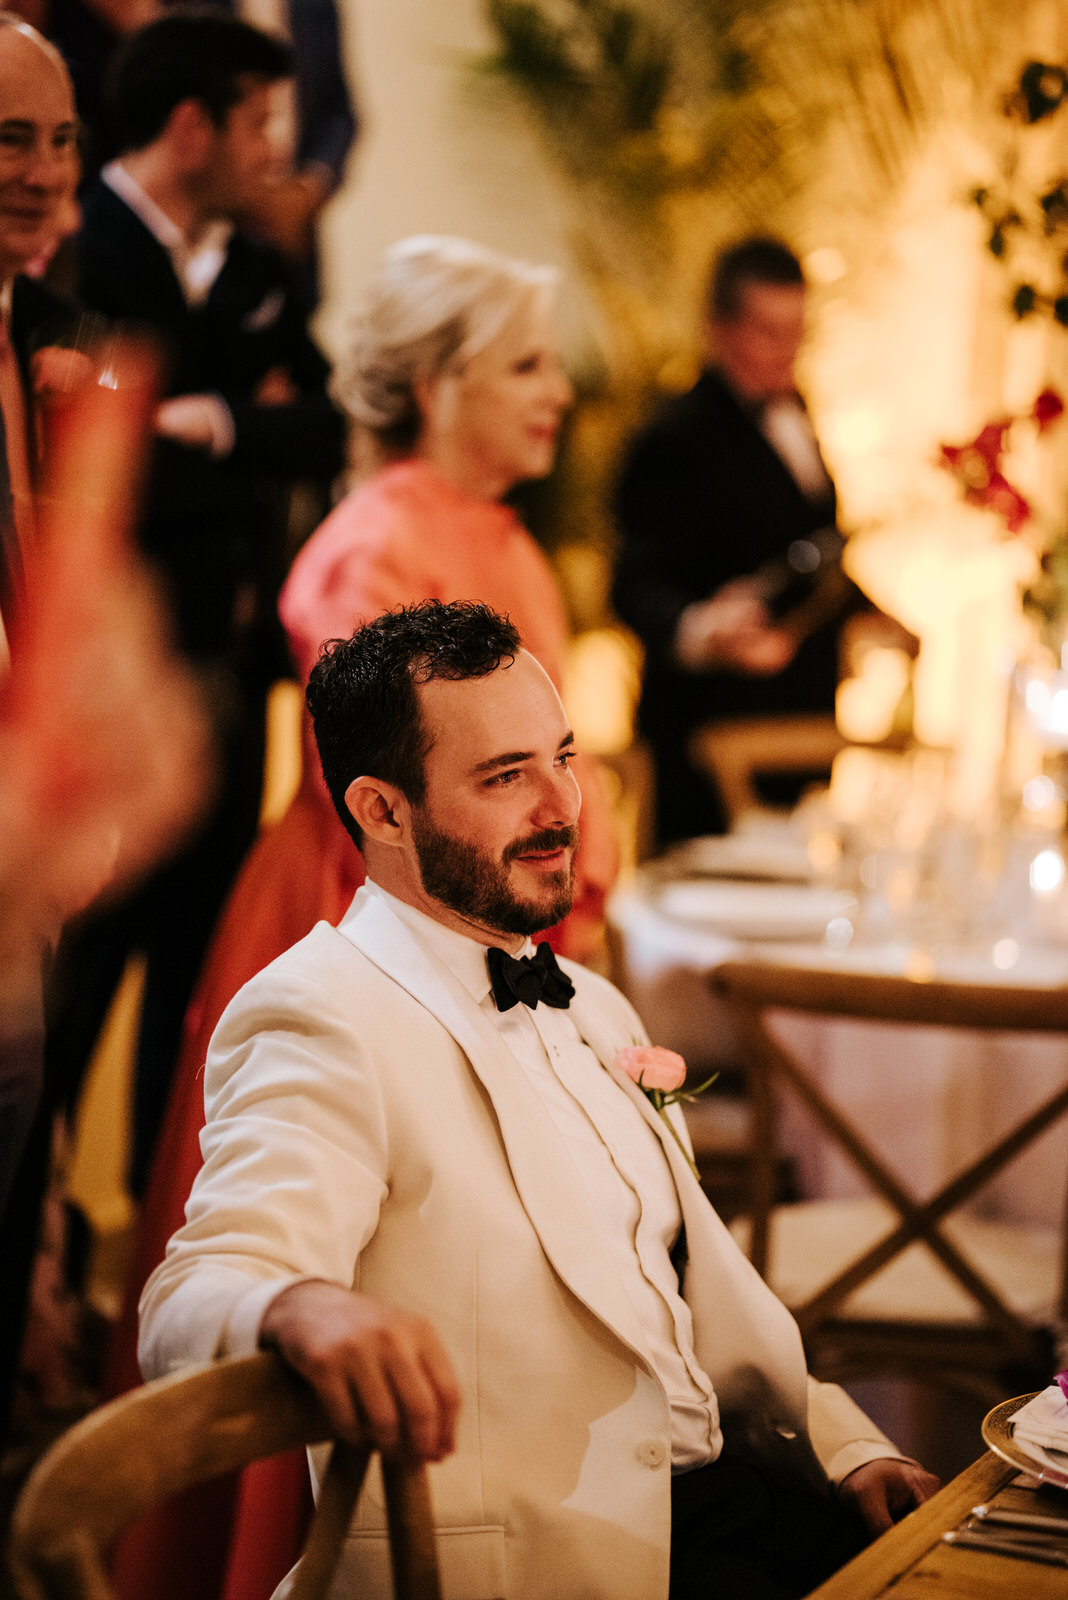 Groom sits and watches on as bride dances with his father in emotional dance